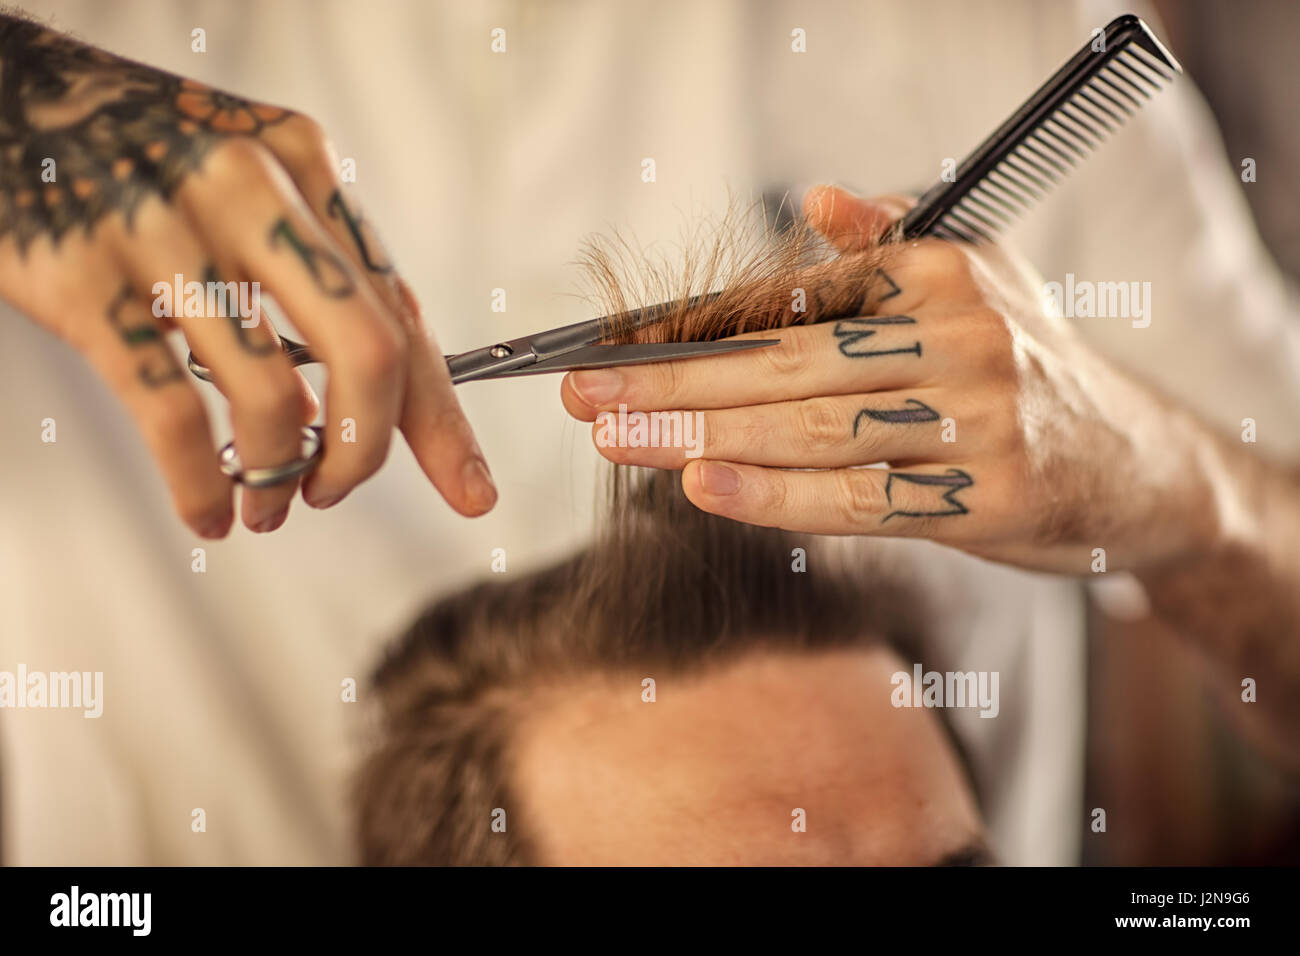 close up haircut at barber shop with scissors - Stock Image